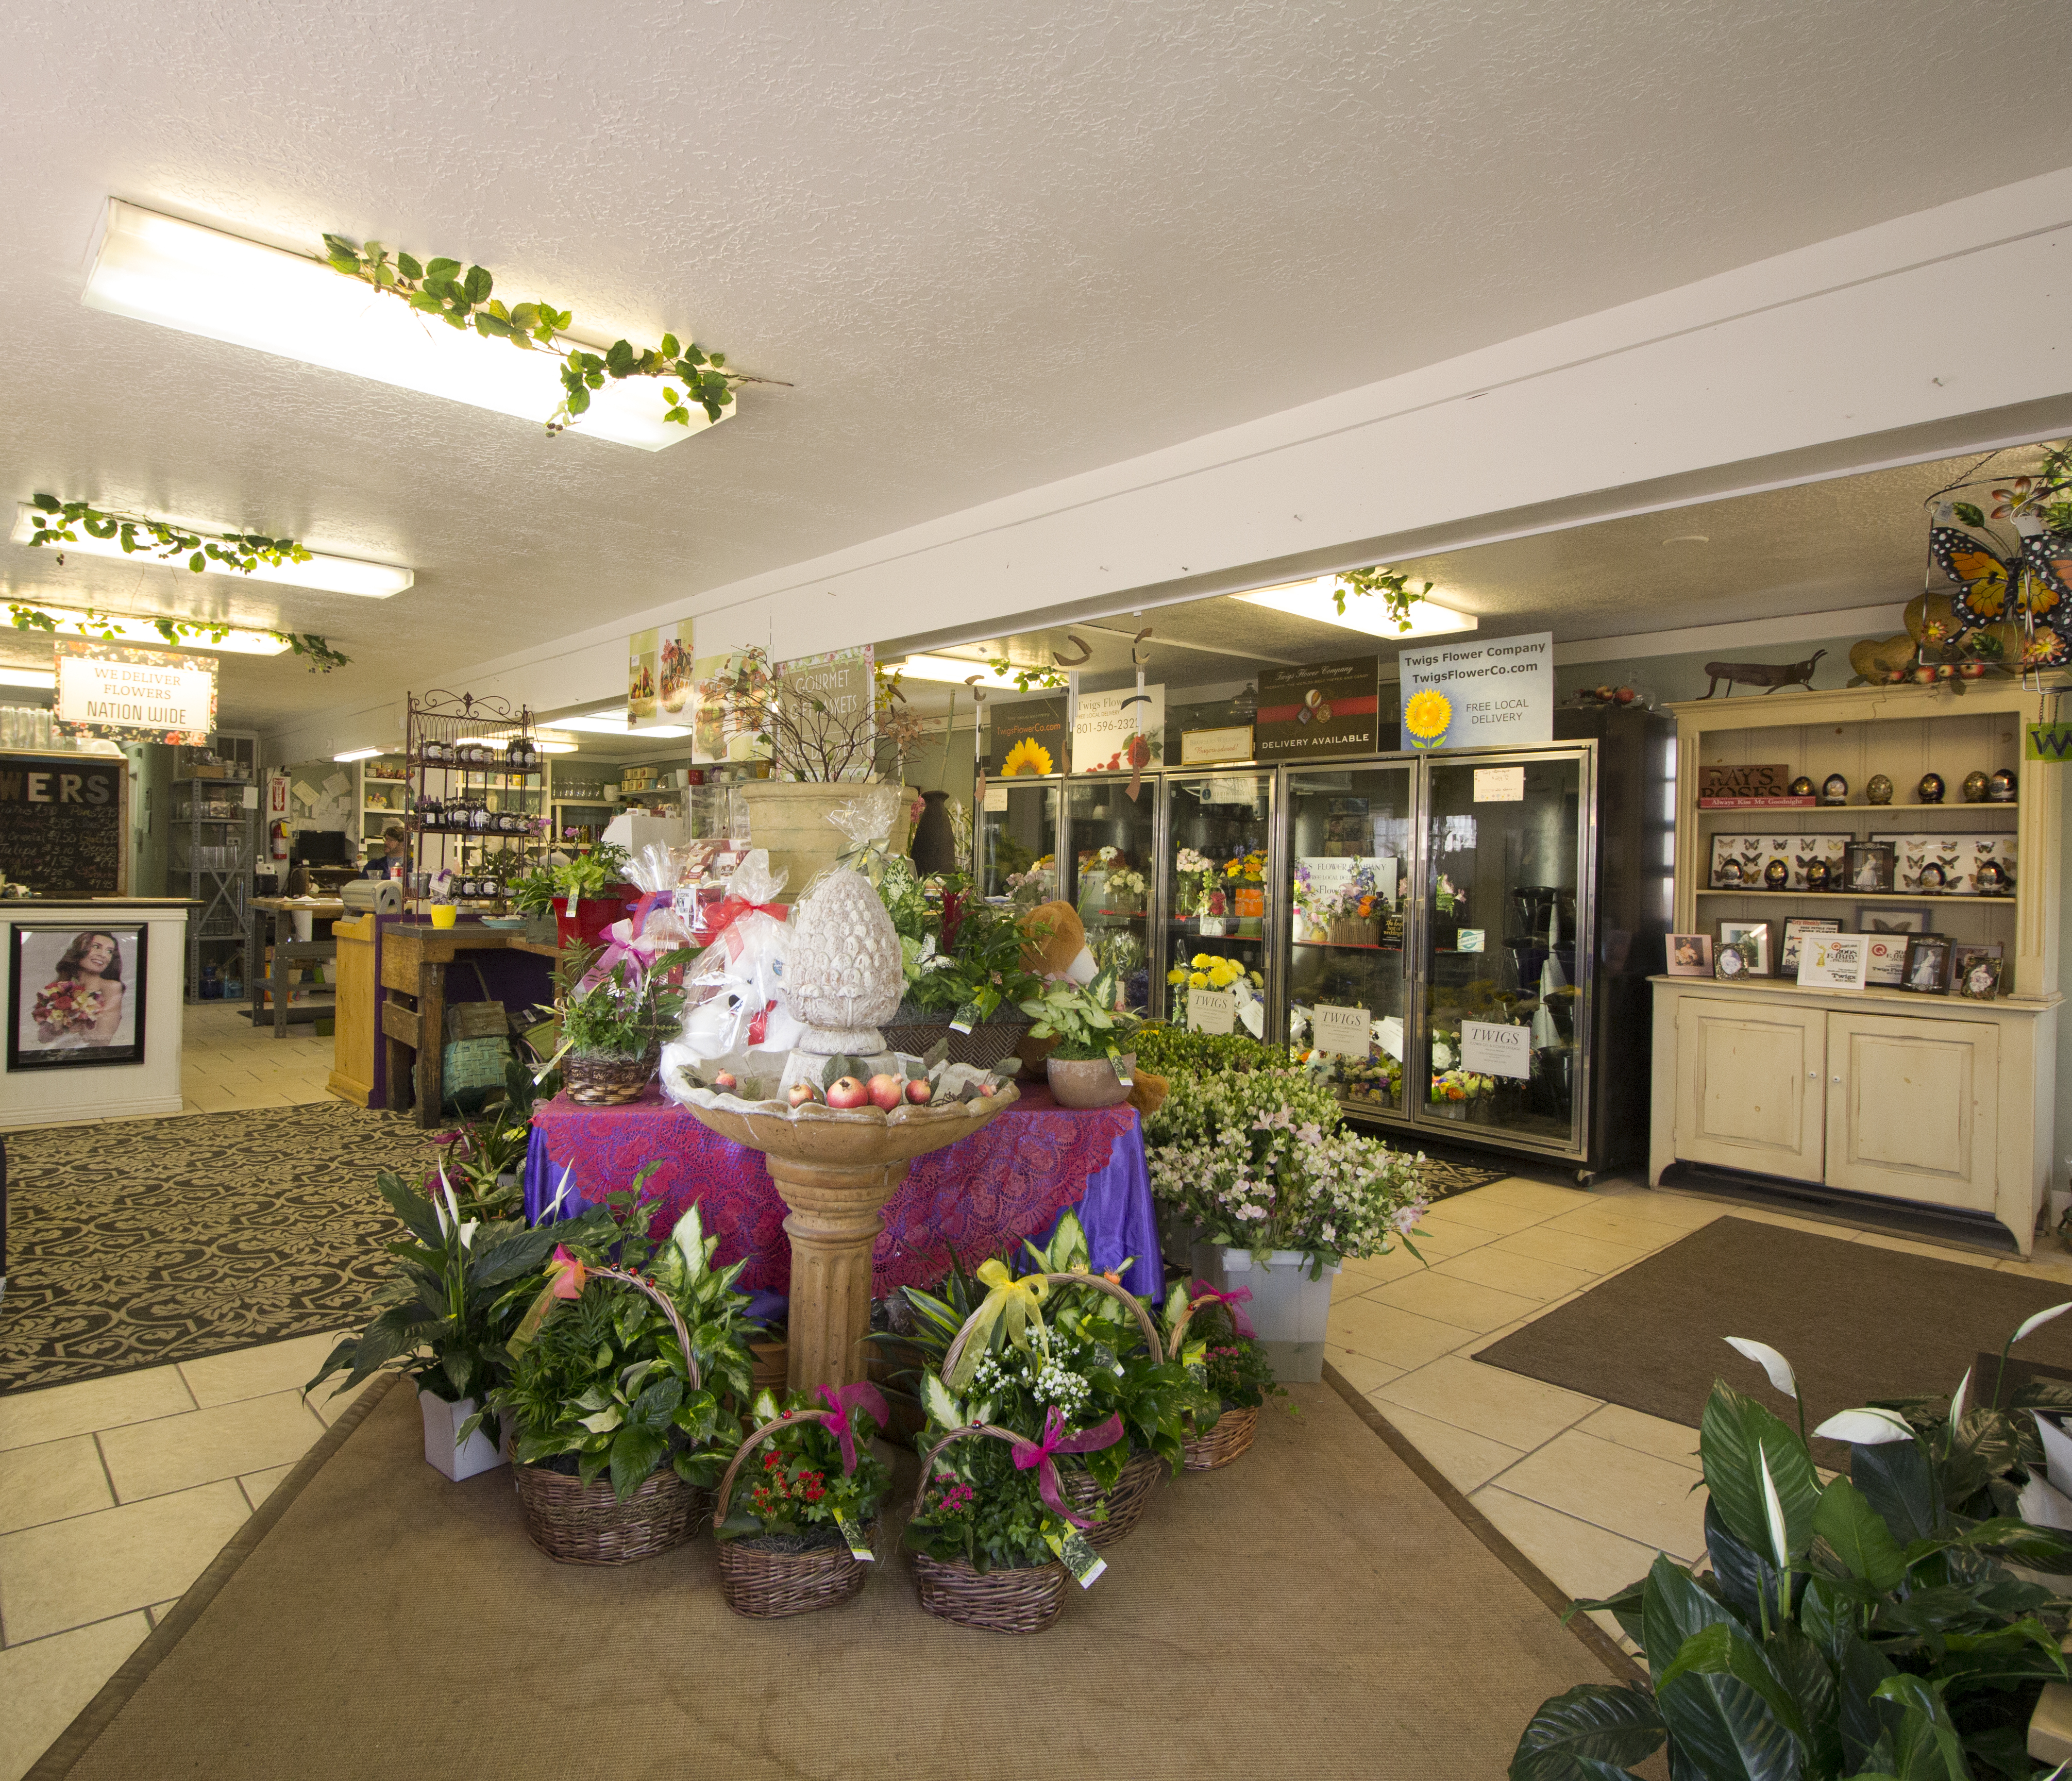 Twig's Flower Company has been offering the Salt Lake City, Utah area superior floral arrangements and assortments since 1989.